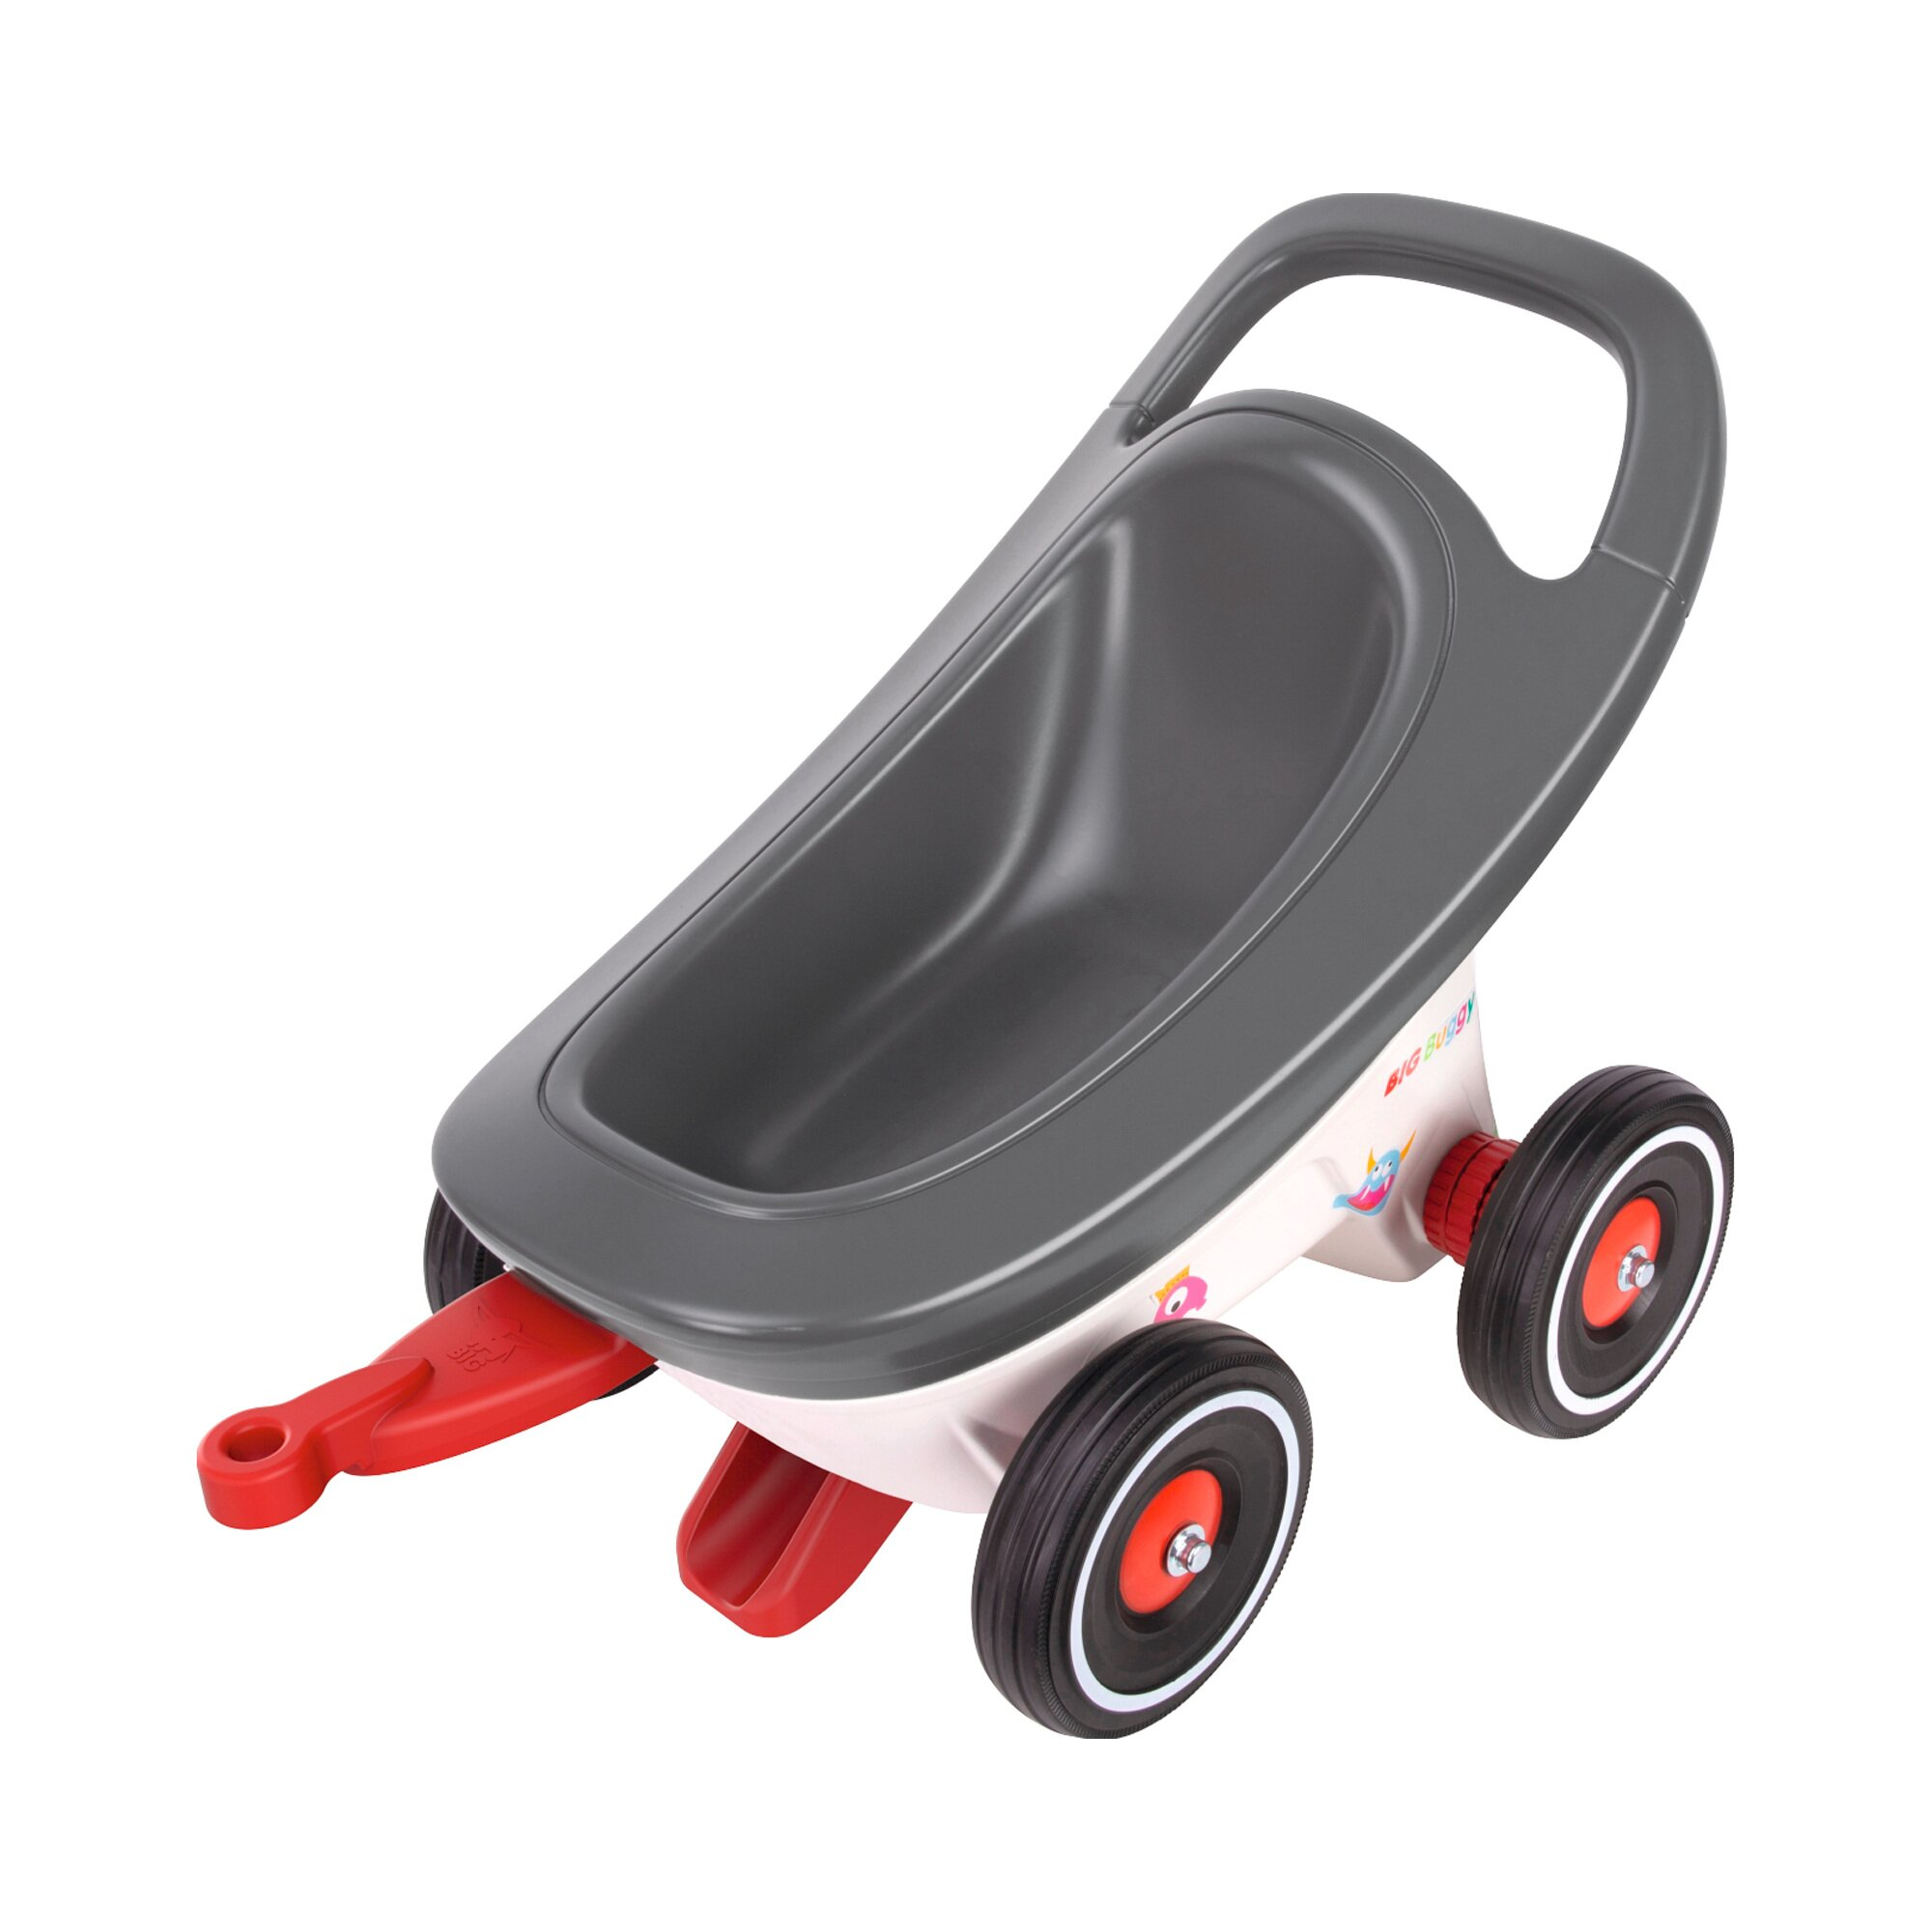 Big Lauflernwagen Buggy 3 in 1